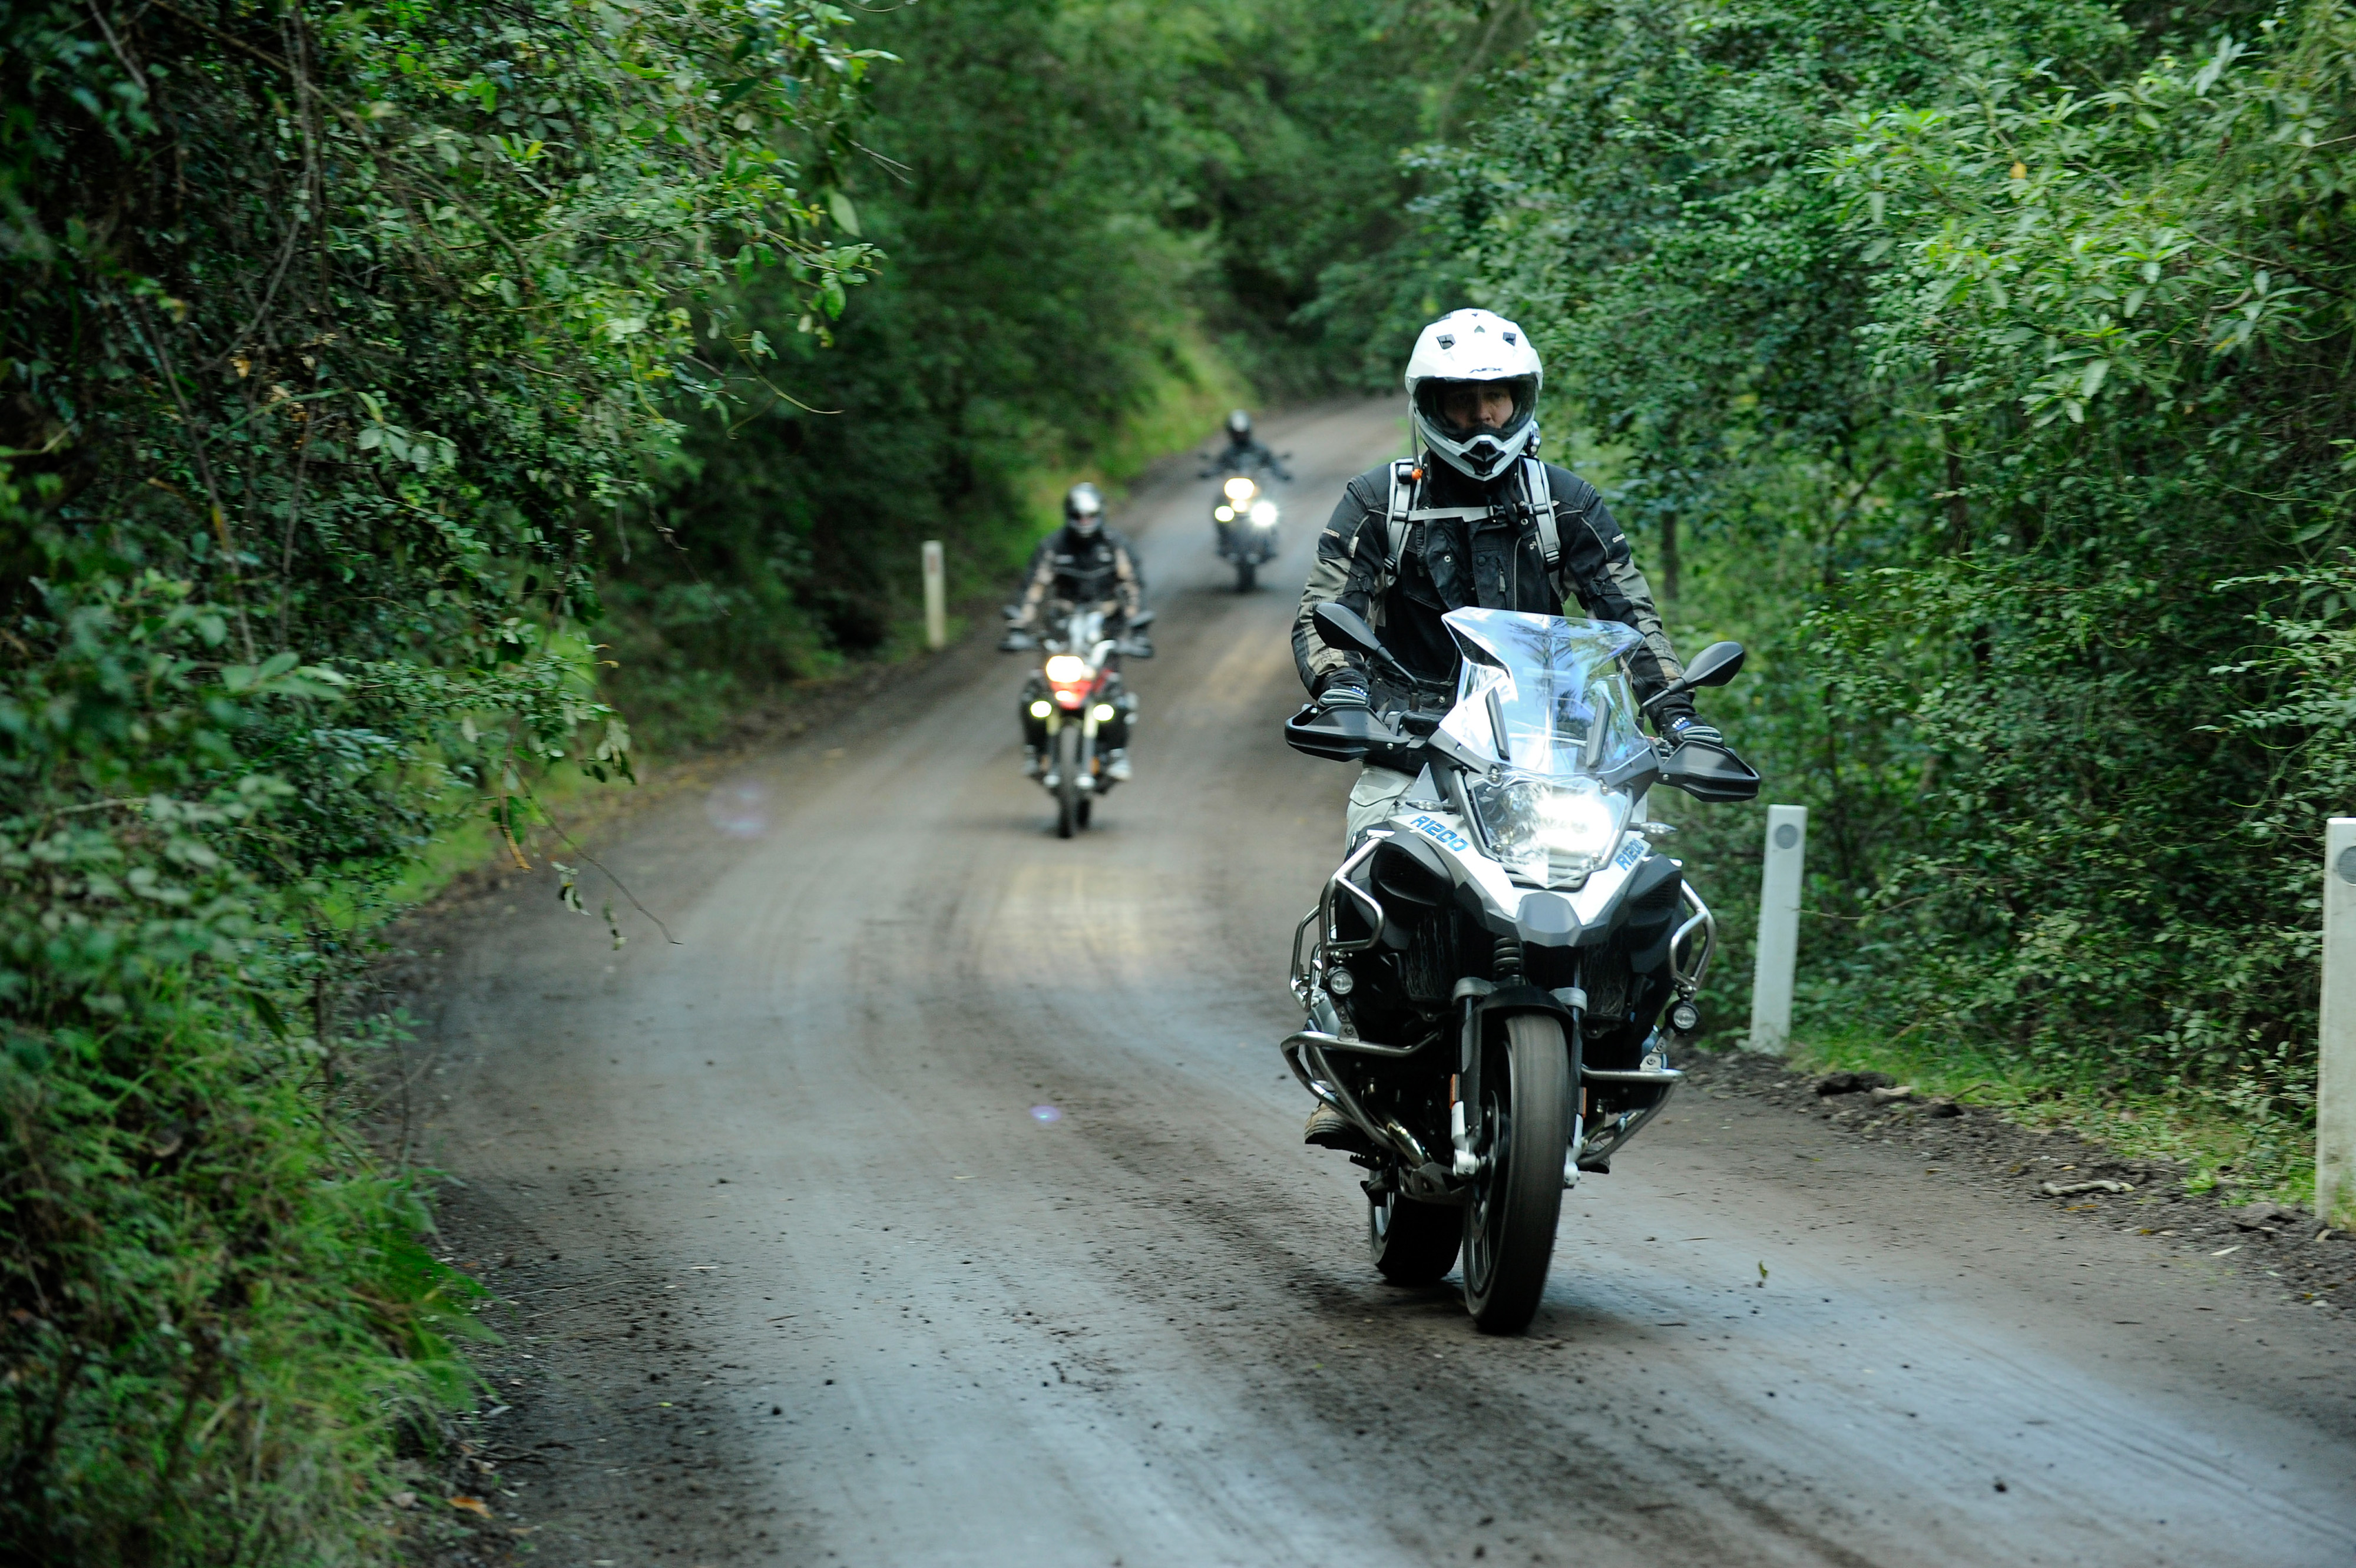 The BMW Motorrad GS Experience - Test ride the legend. - Bike Review